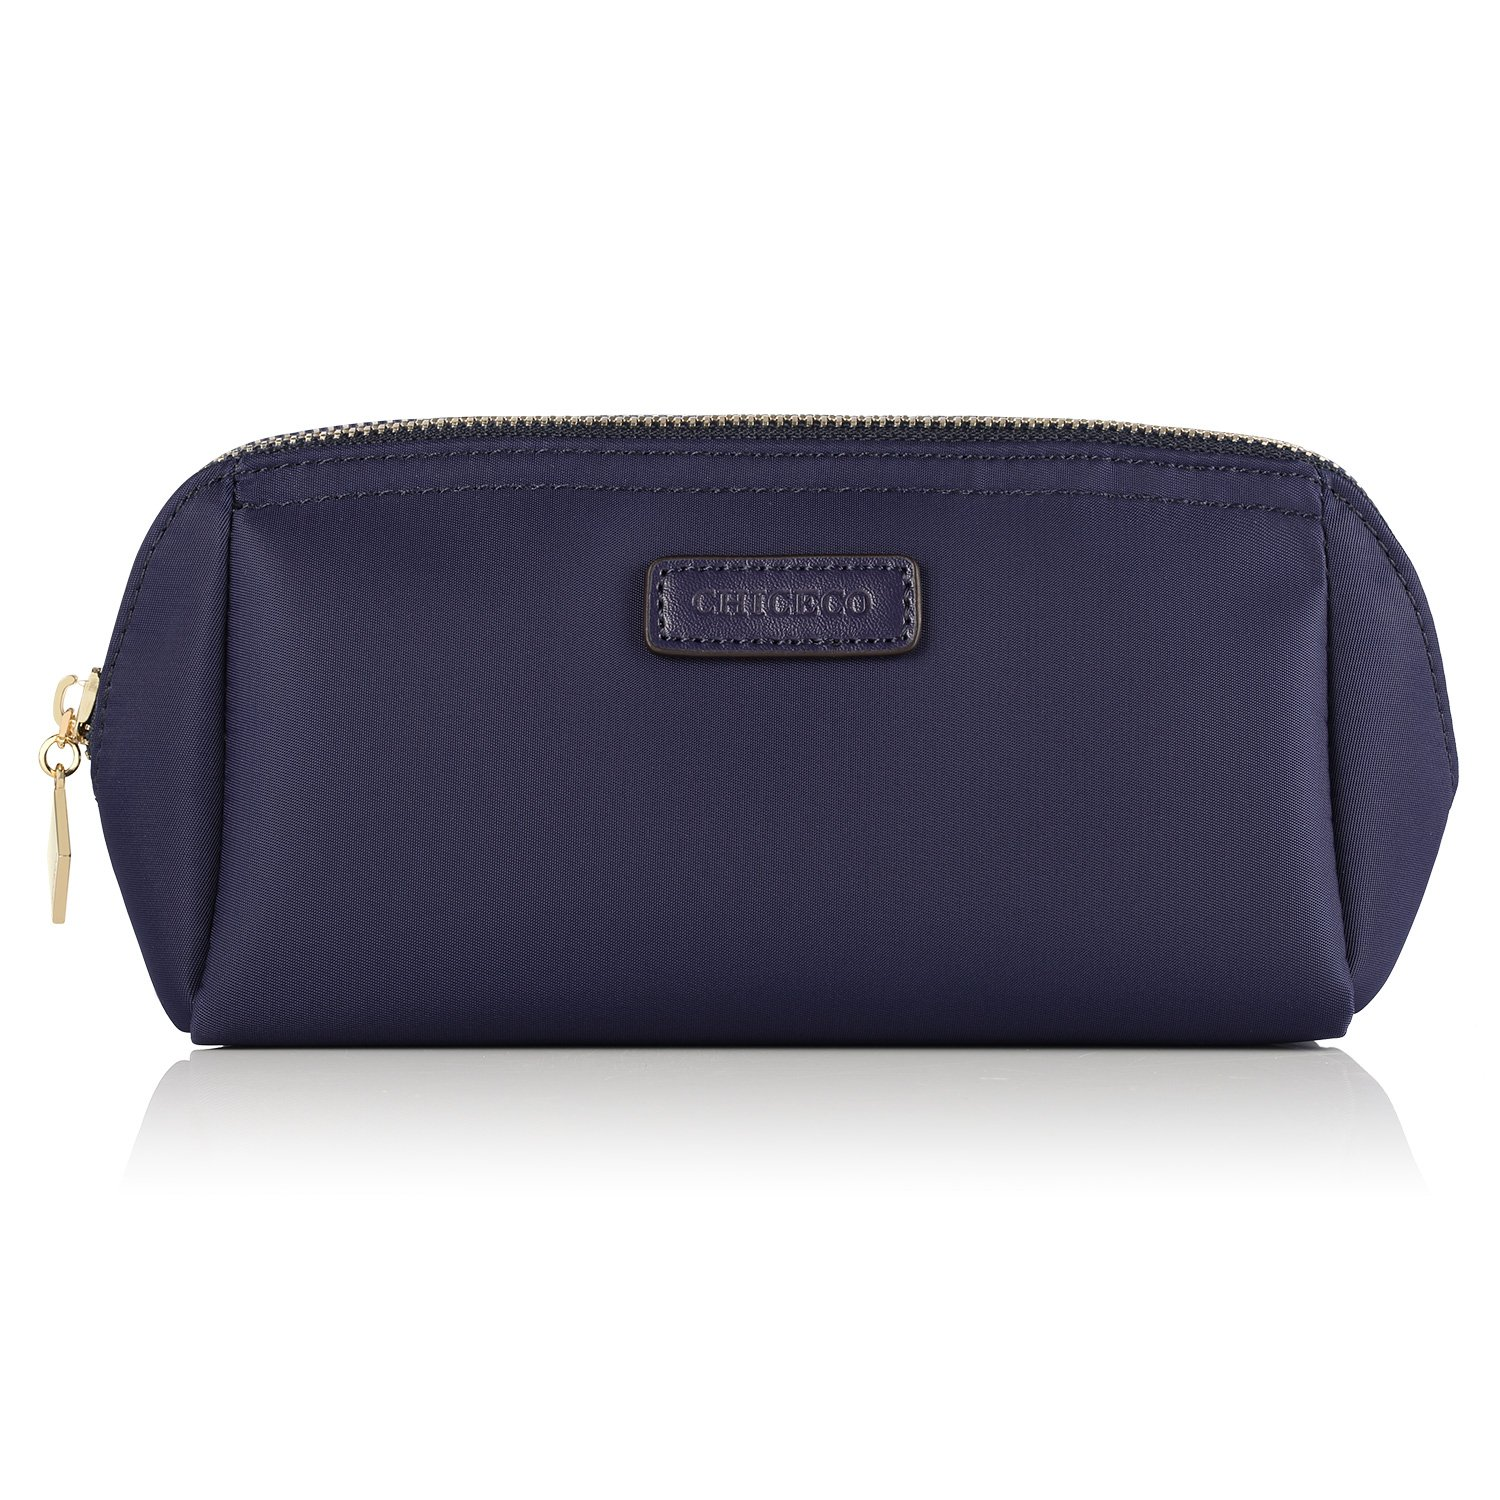 CHICECO Handy Cosmetic Pouch Clutch Makeup Bag - Navy Blue by CHICECO (Image #3)